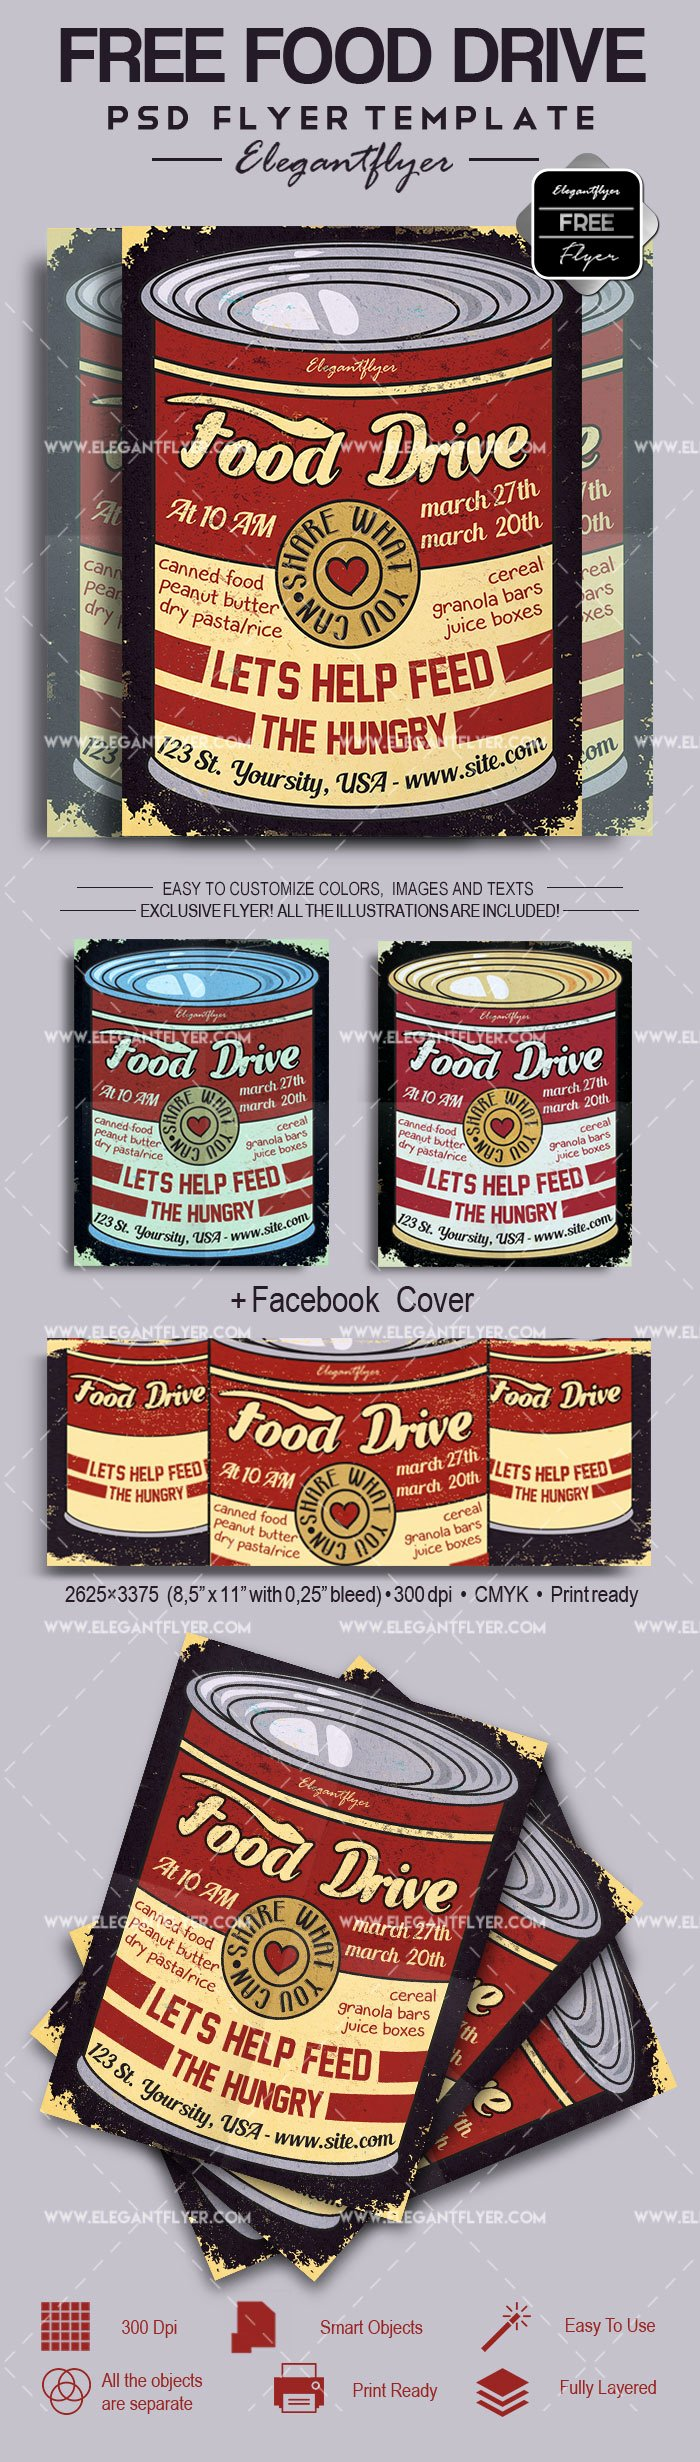 Food Drive Flyer Template Beautiful Food Drive – Free Flyer Psd Template – by Elegantflyer